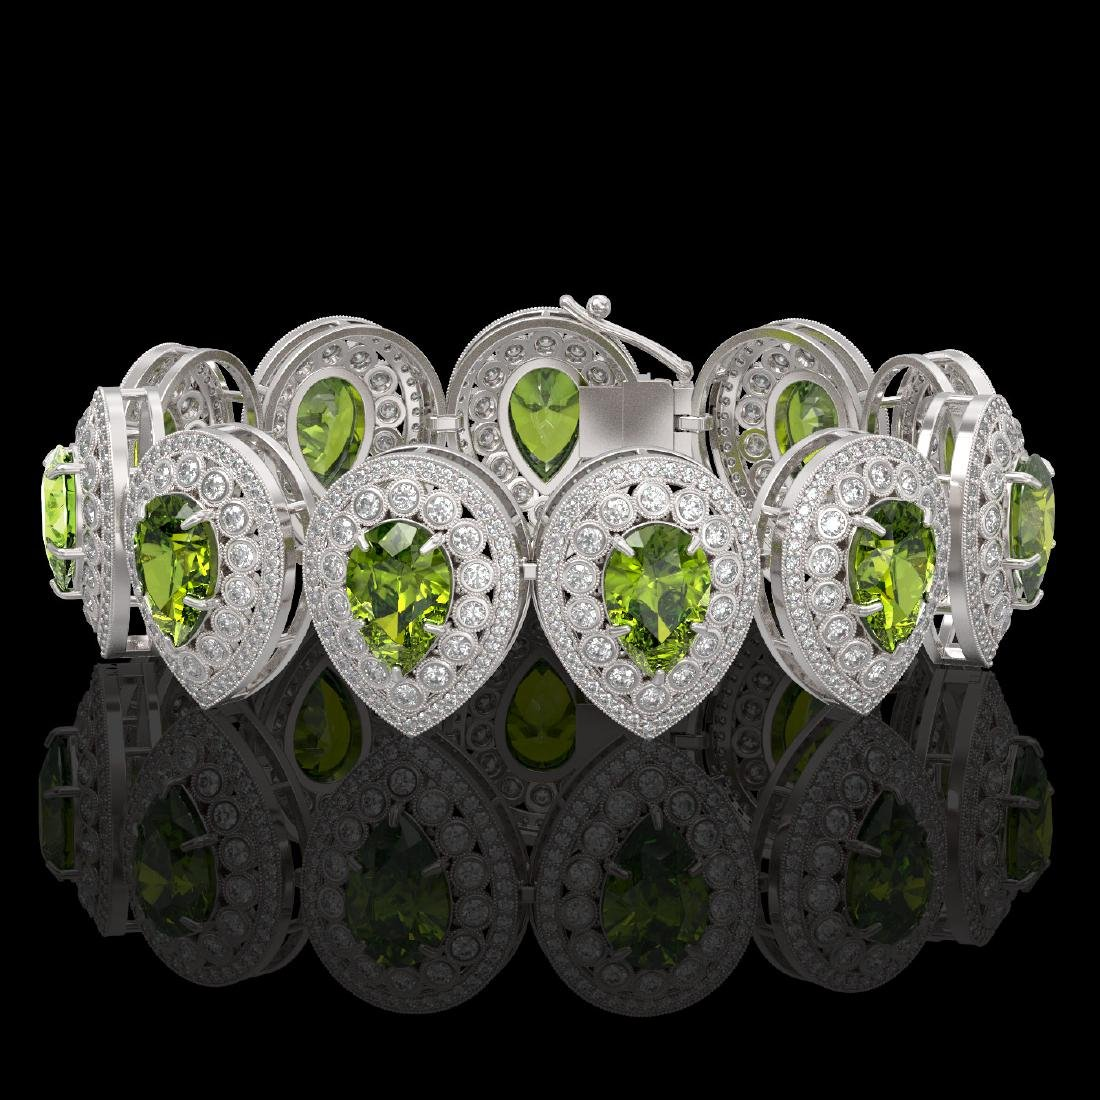 57.24 ctw Tourmaline & Diamond Bracelet 14K White Gold